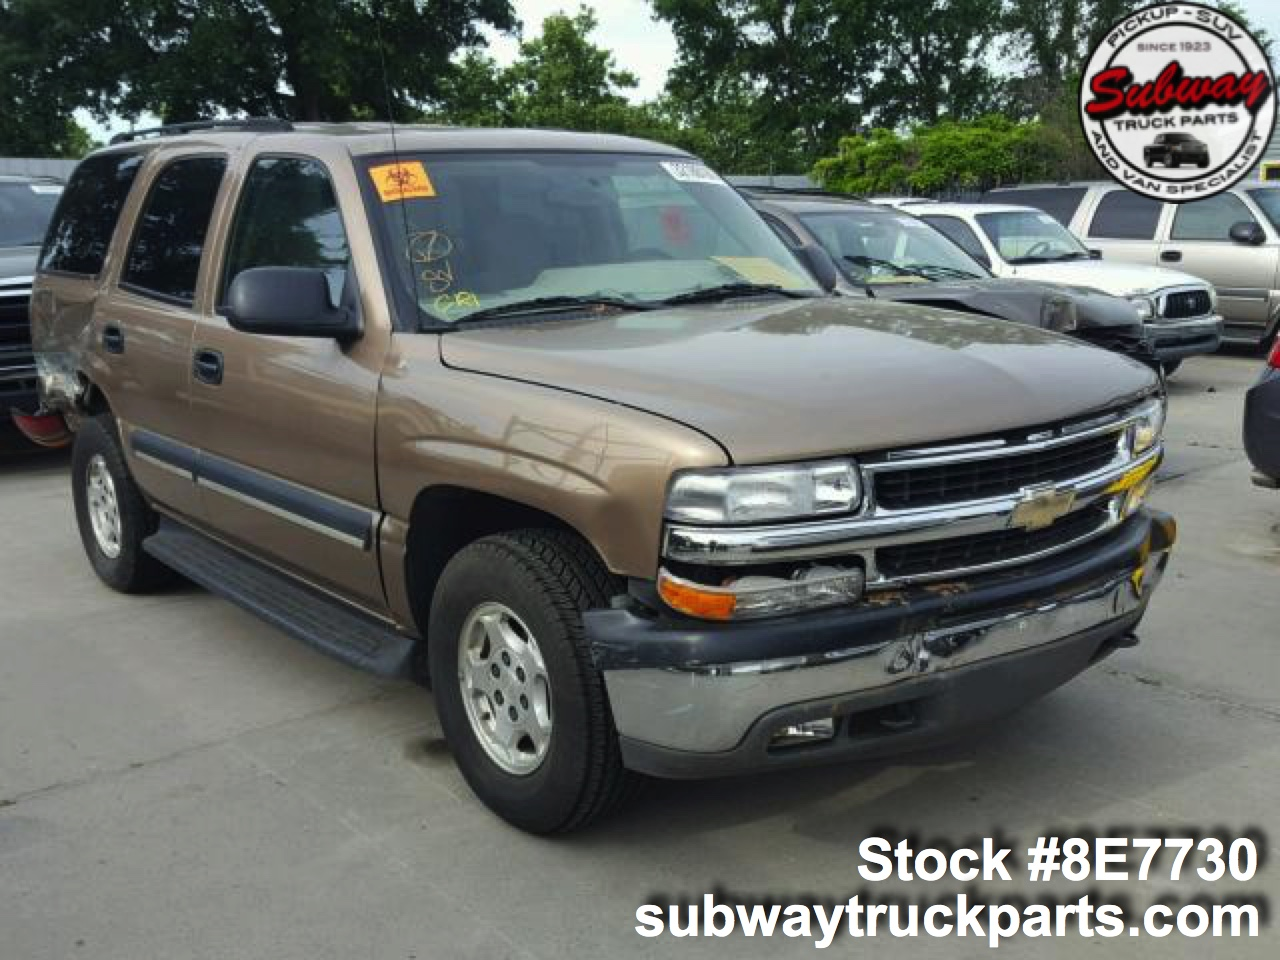 tahoe 2004 parts chevrolet 3l truck 4x4 print sacramento wrecked aftermarket send friend pickup subway subwaytruckparts